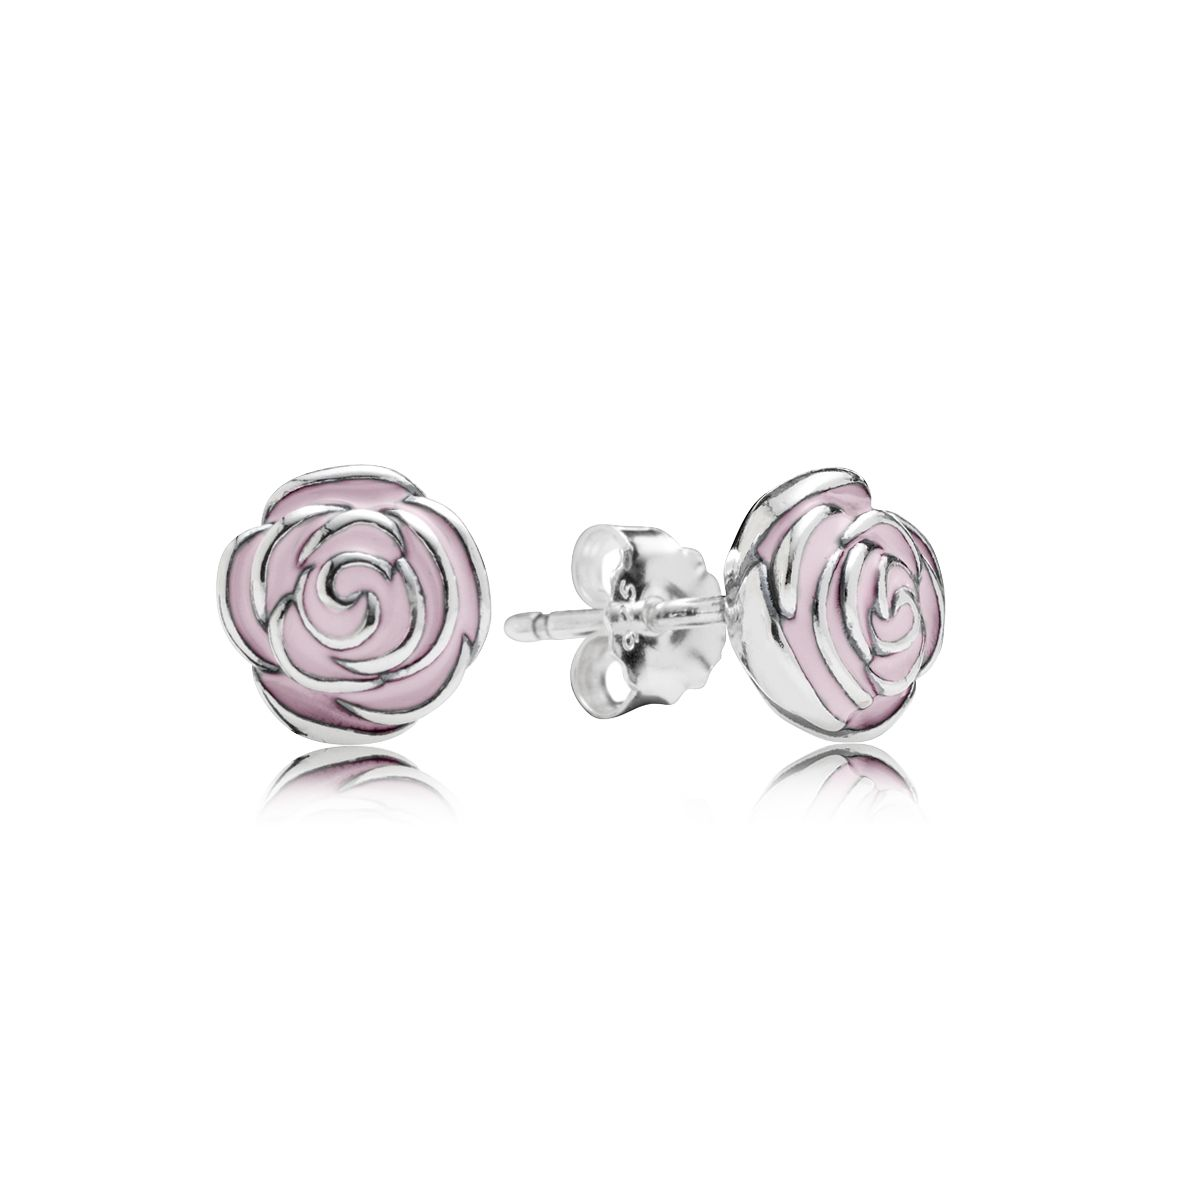 Roses silver stud earrings with pink enamel